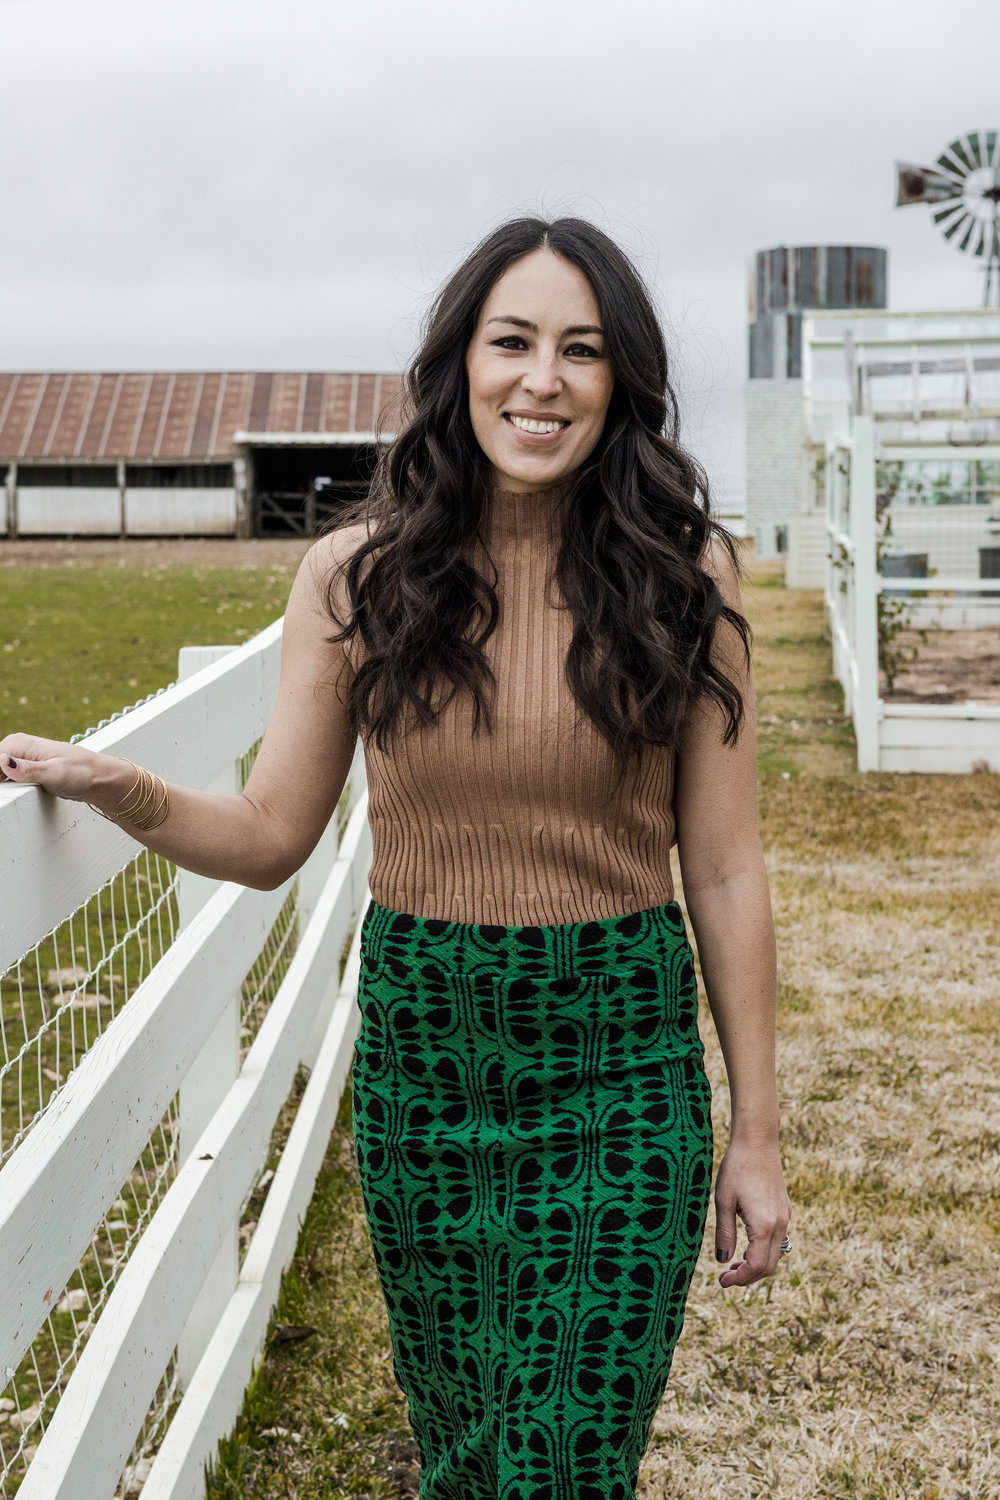 JOANNA GAINES & DARLING MAGAZINE EDITORIAL